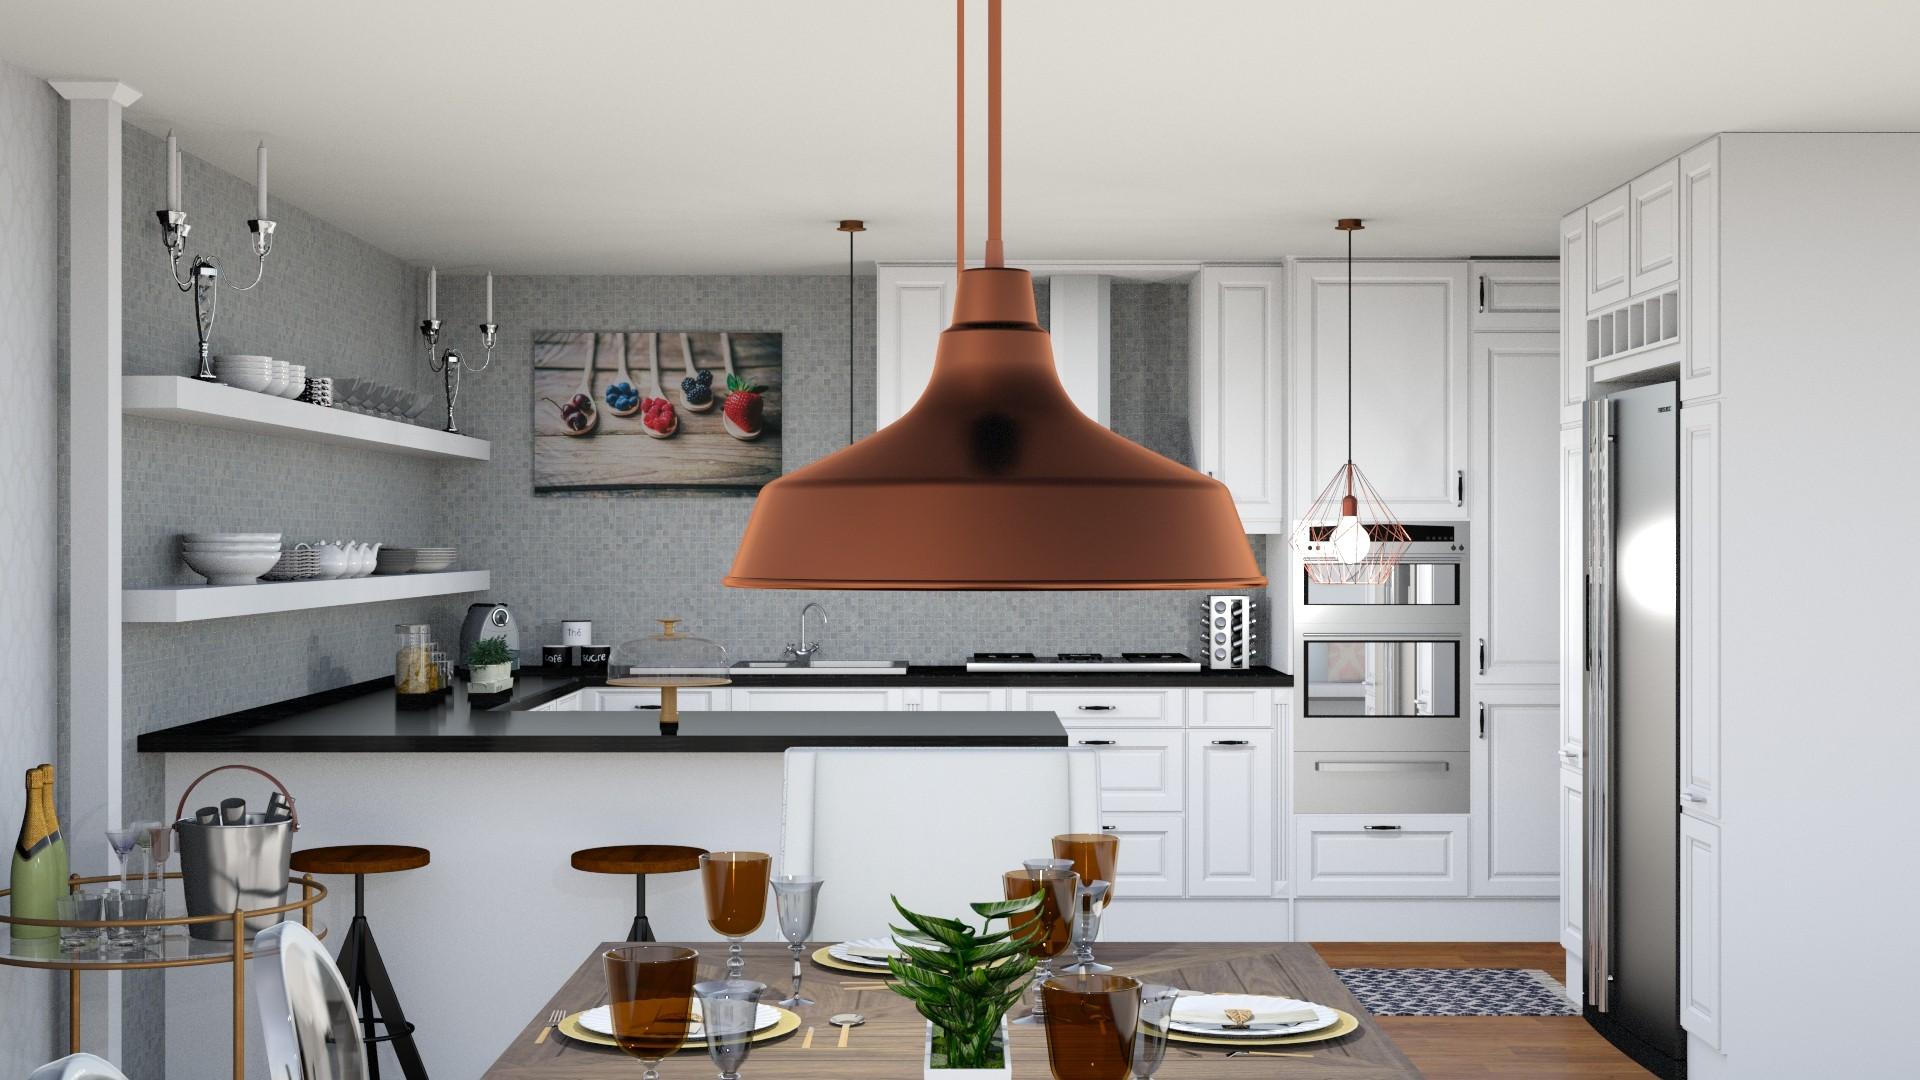 Sassy Charm L.A. Apartment by Albie Knows - Lighting Detail